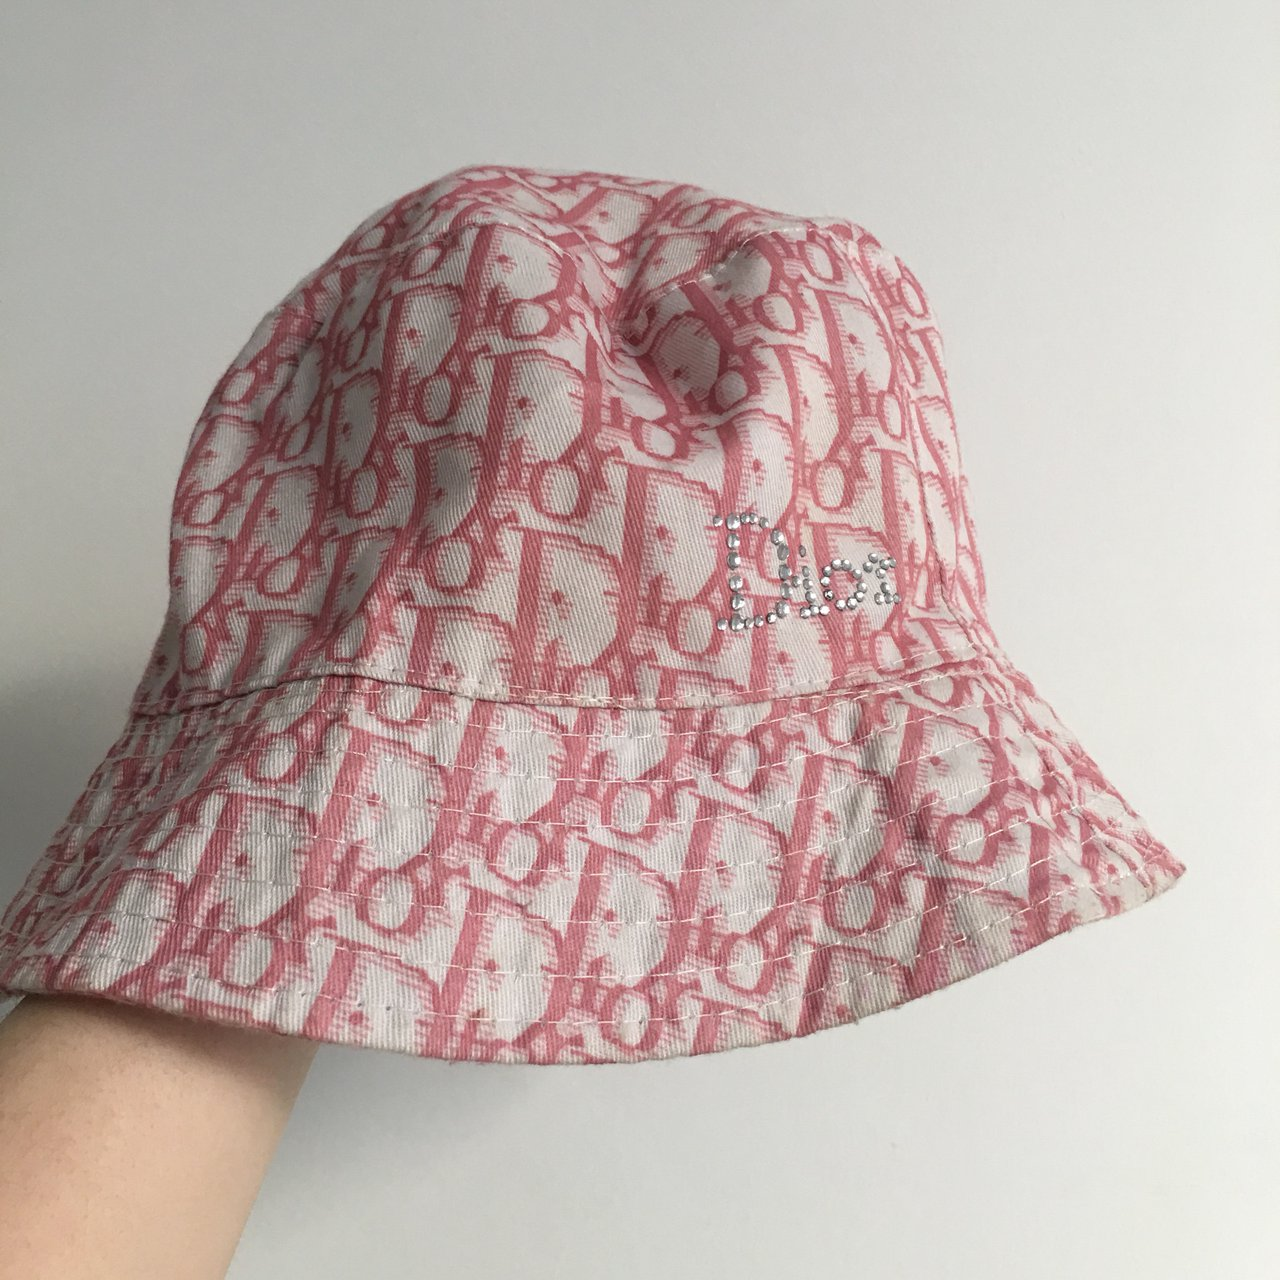 Vintage Dior monogram bucket hat with Diamanté. 90s Y2K 💖 - Depop 591f90848aa